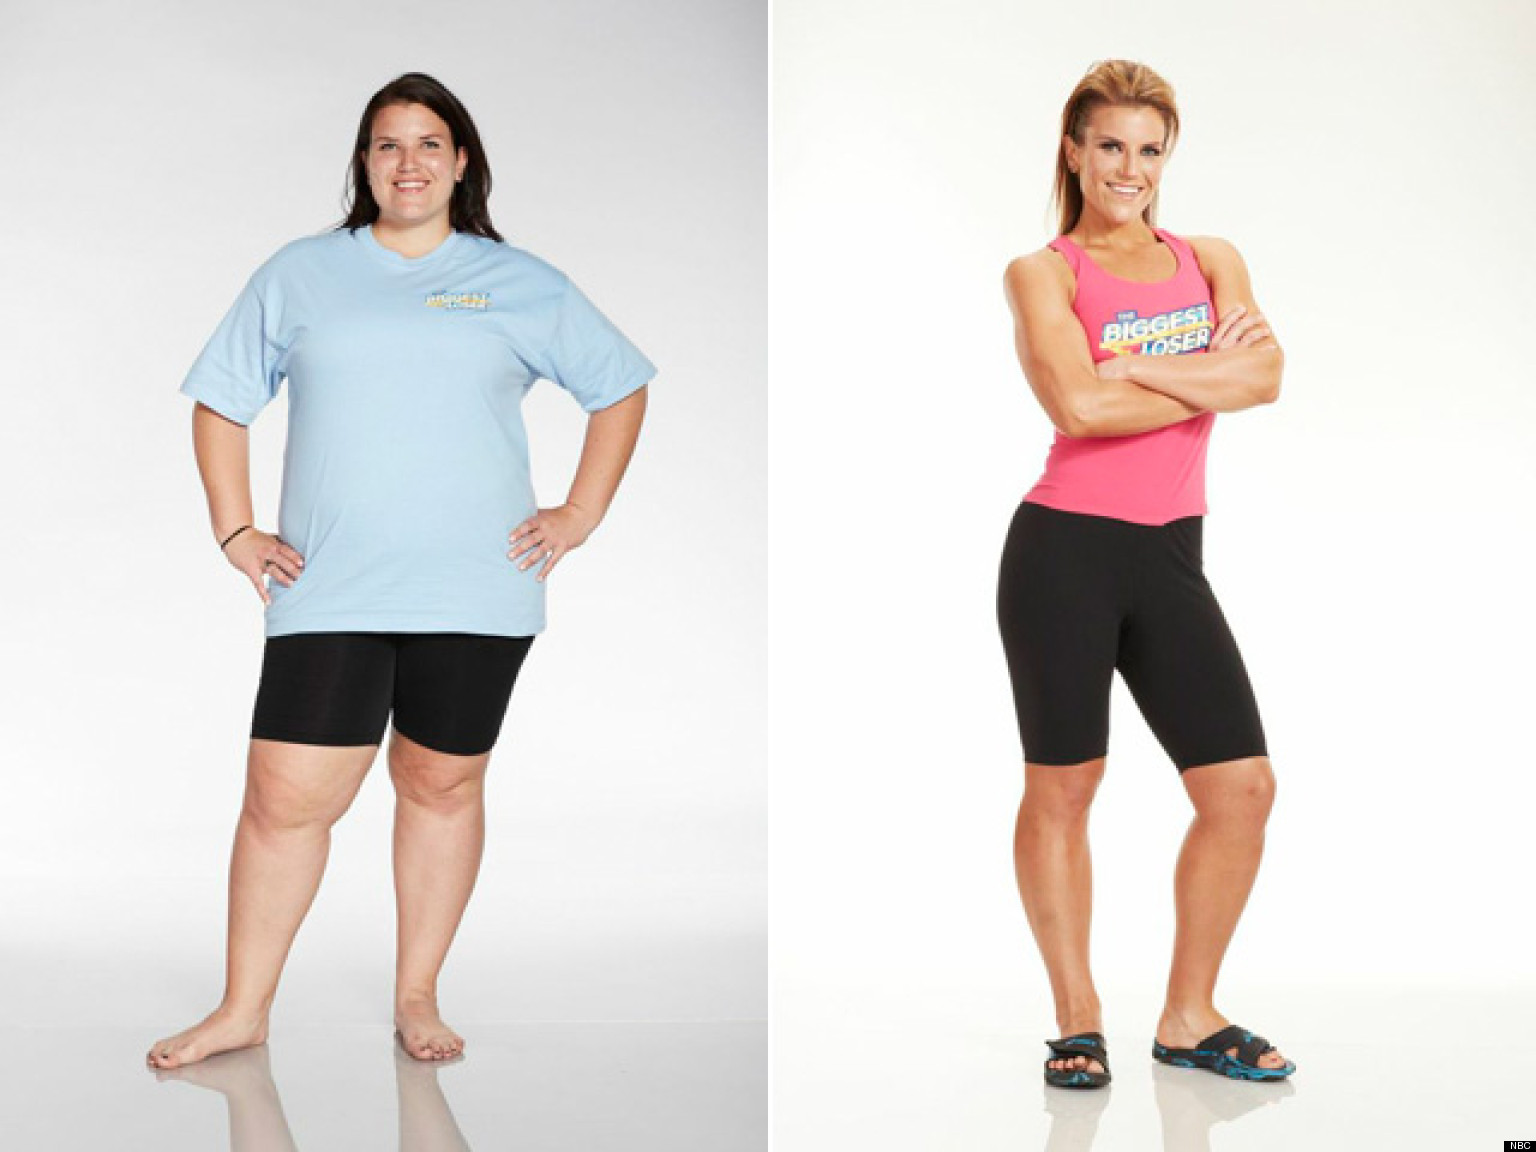 Biggest Loser Season 11 'The Biggest Loser' Wi...